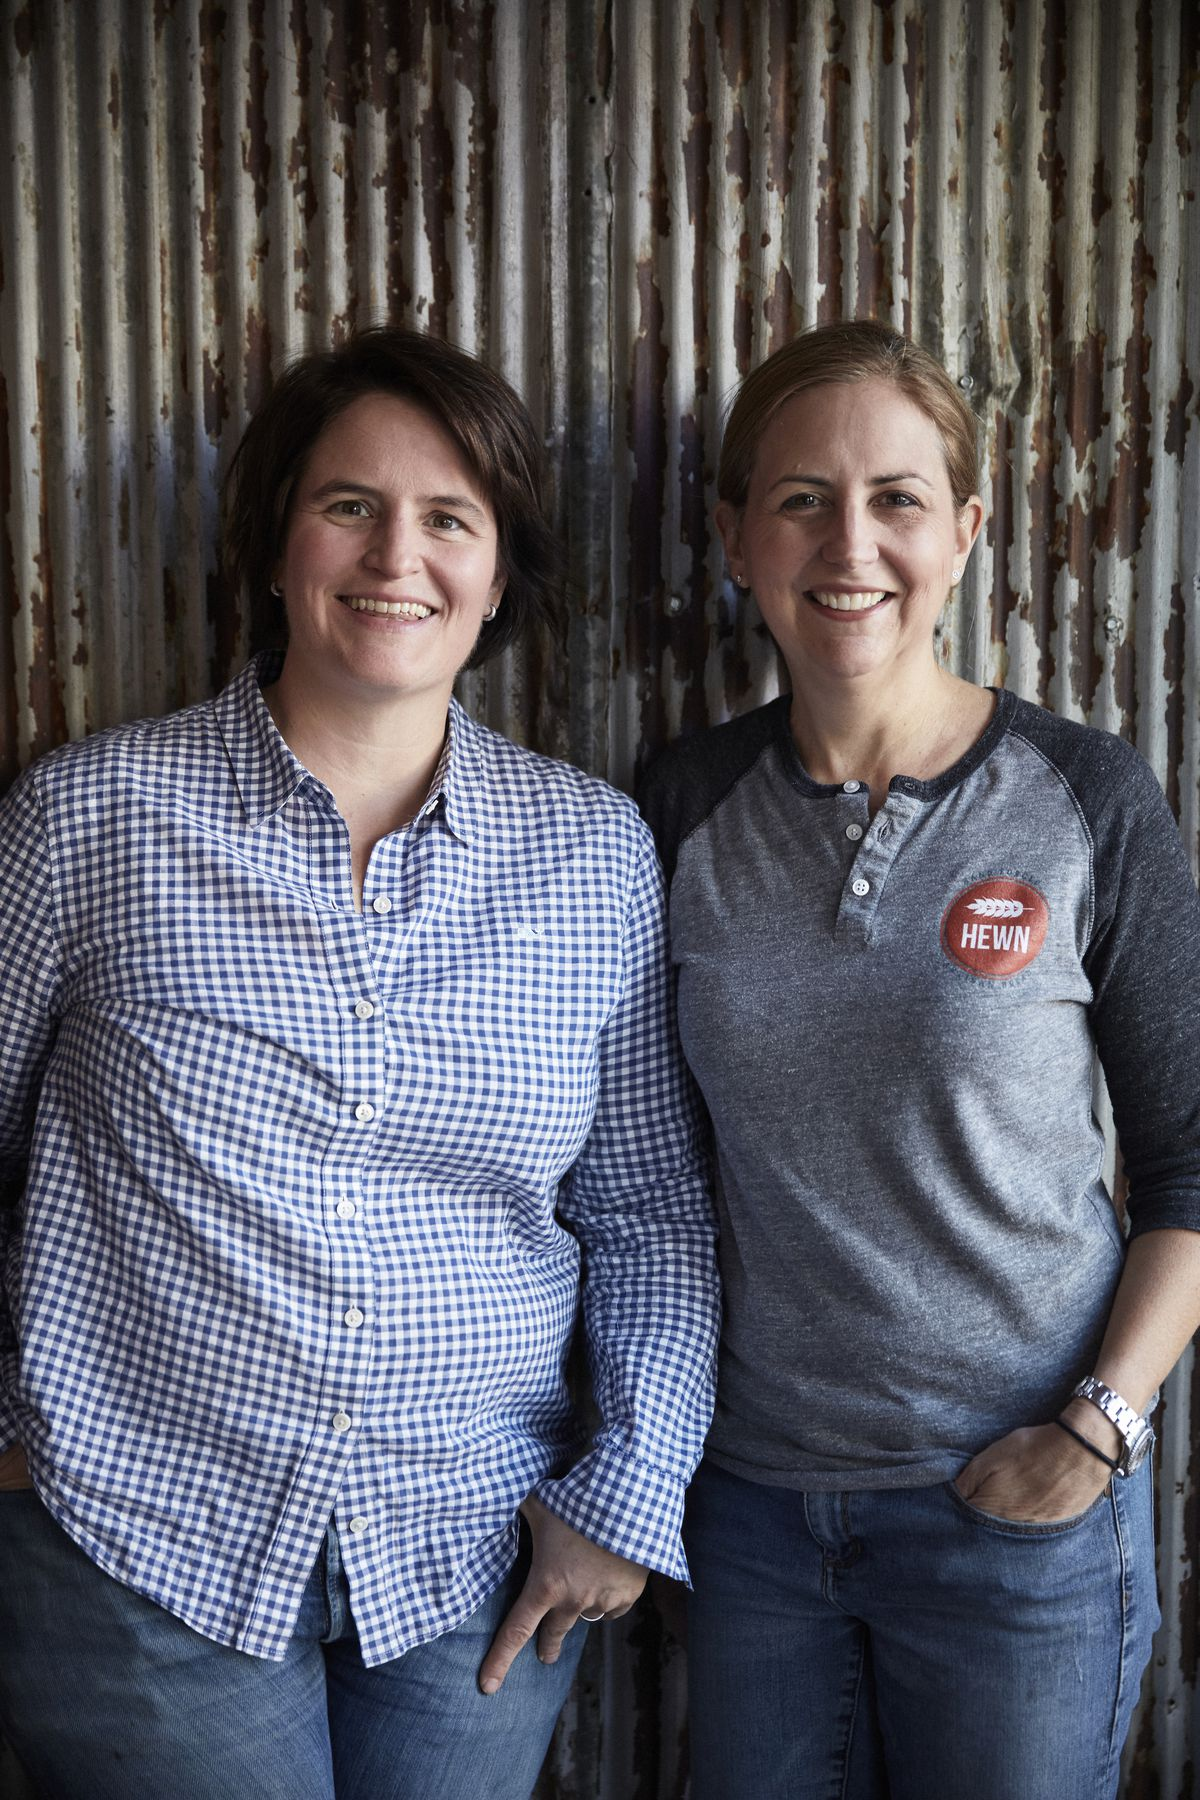 Two women smiling while wearing denim jeans.